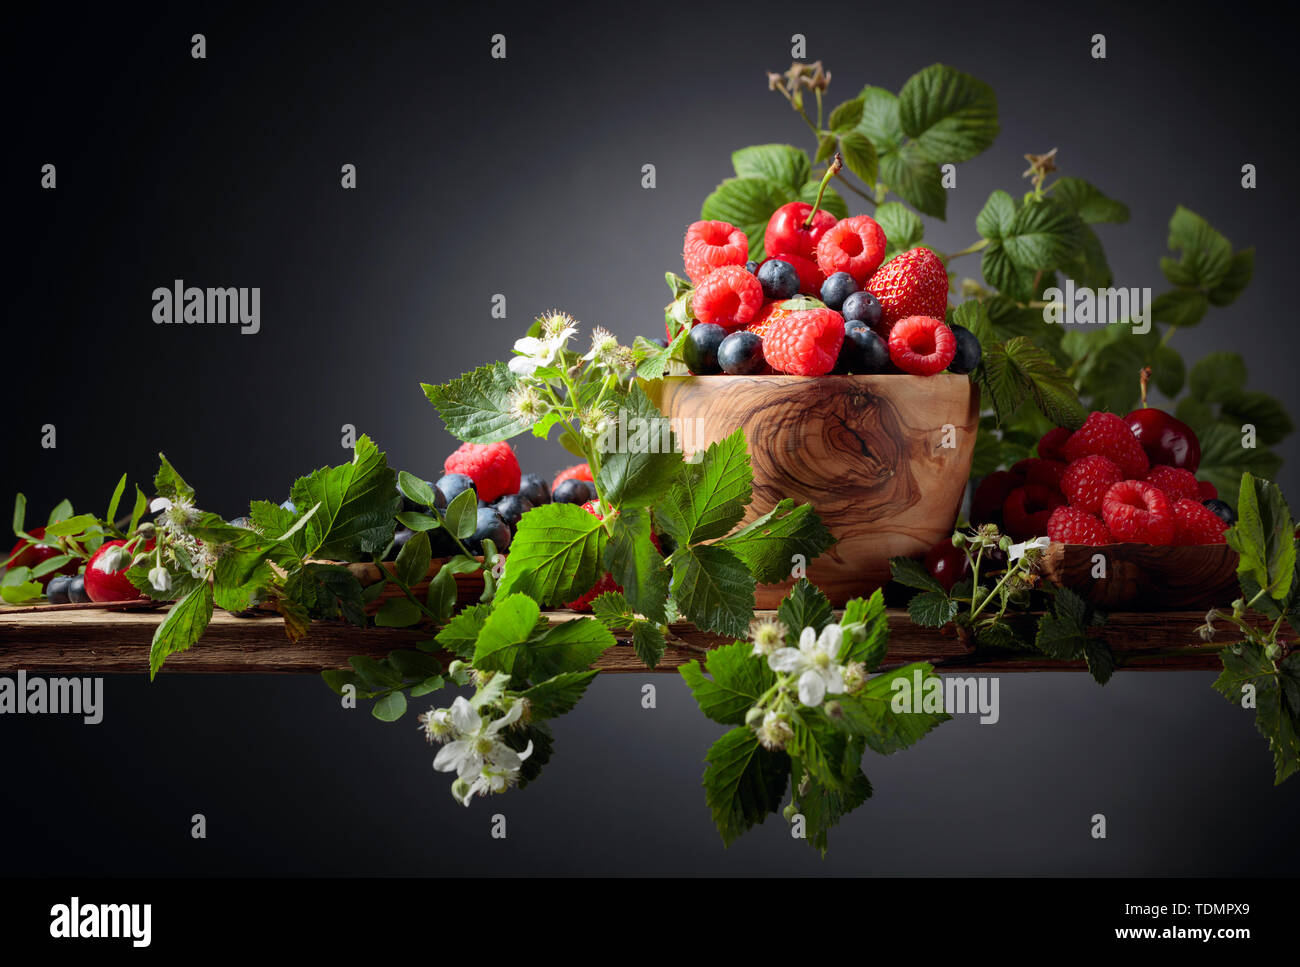 Berries closeup colorful assorted mix of strawberry, blueberry, raspberry and sweet cherry on a old wooden table. Various juicy berries with leaves. - Stock Image